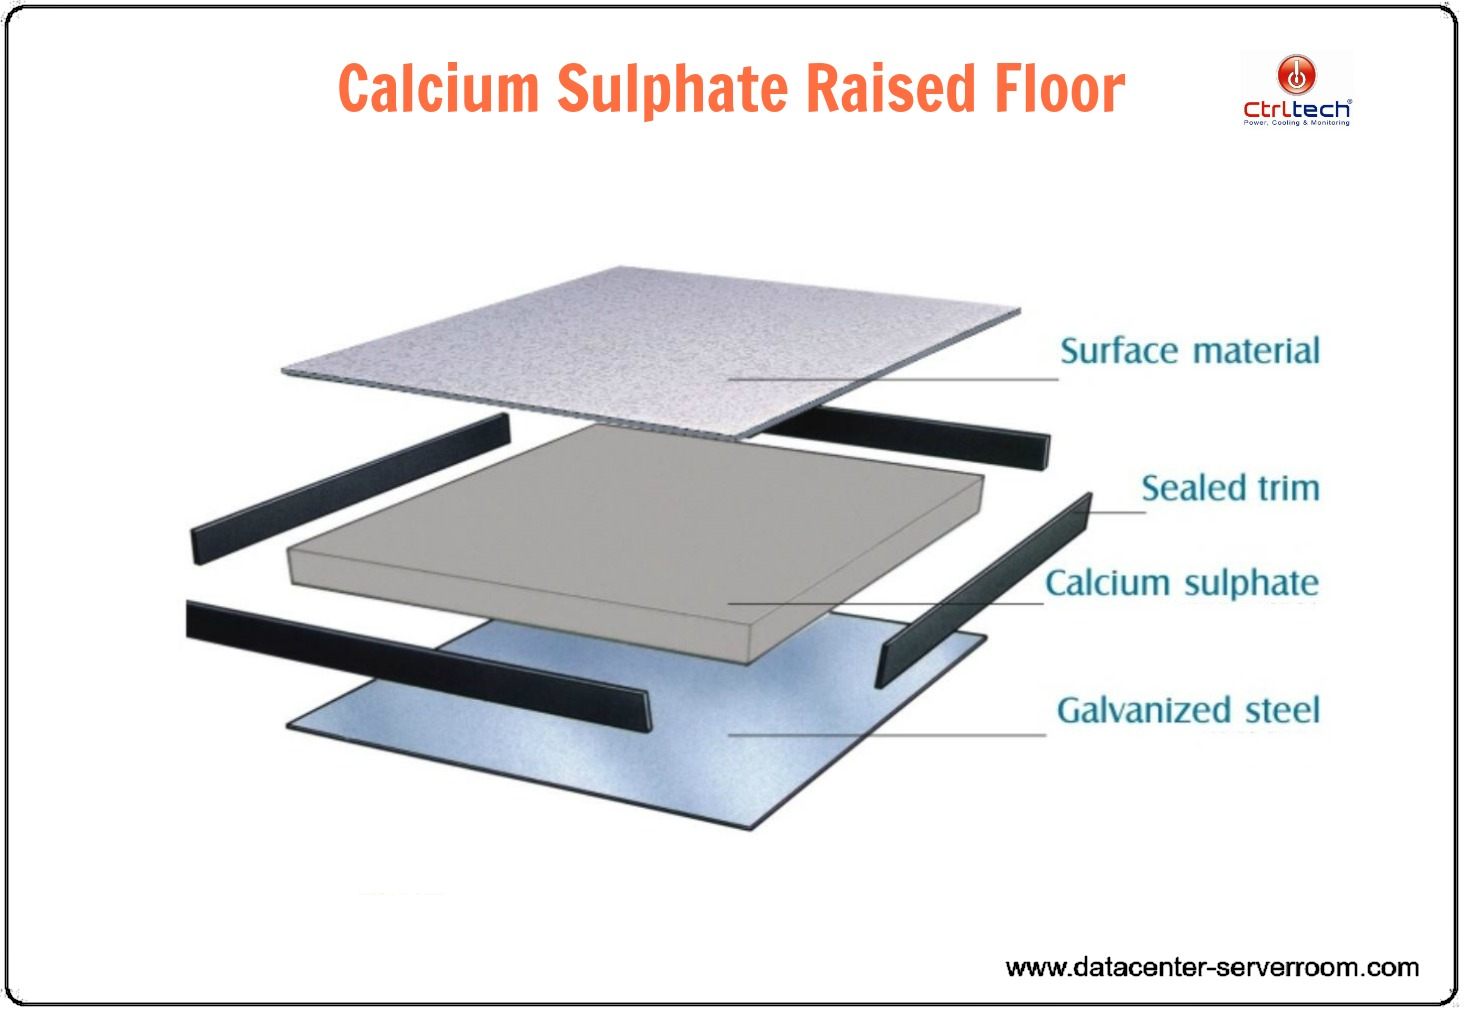 Calcium Sulphate Raised Floor or server room floor in Dubai, UAE.jpg